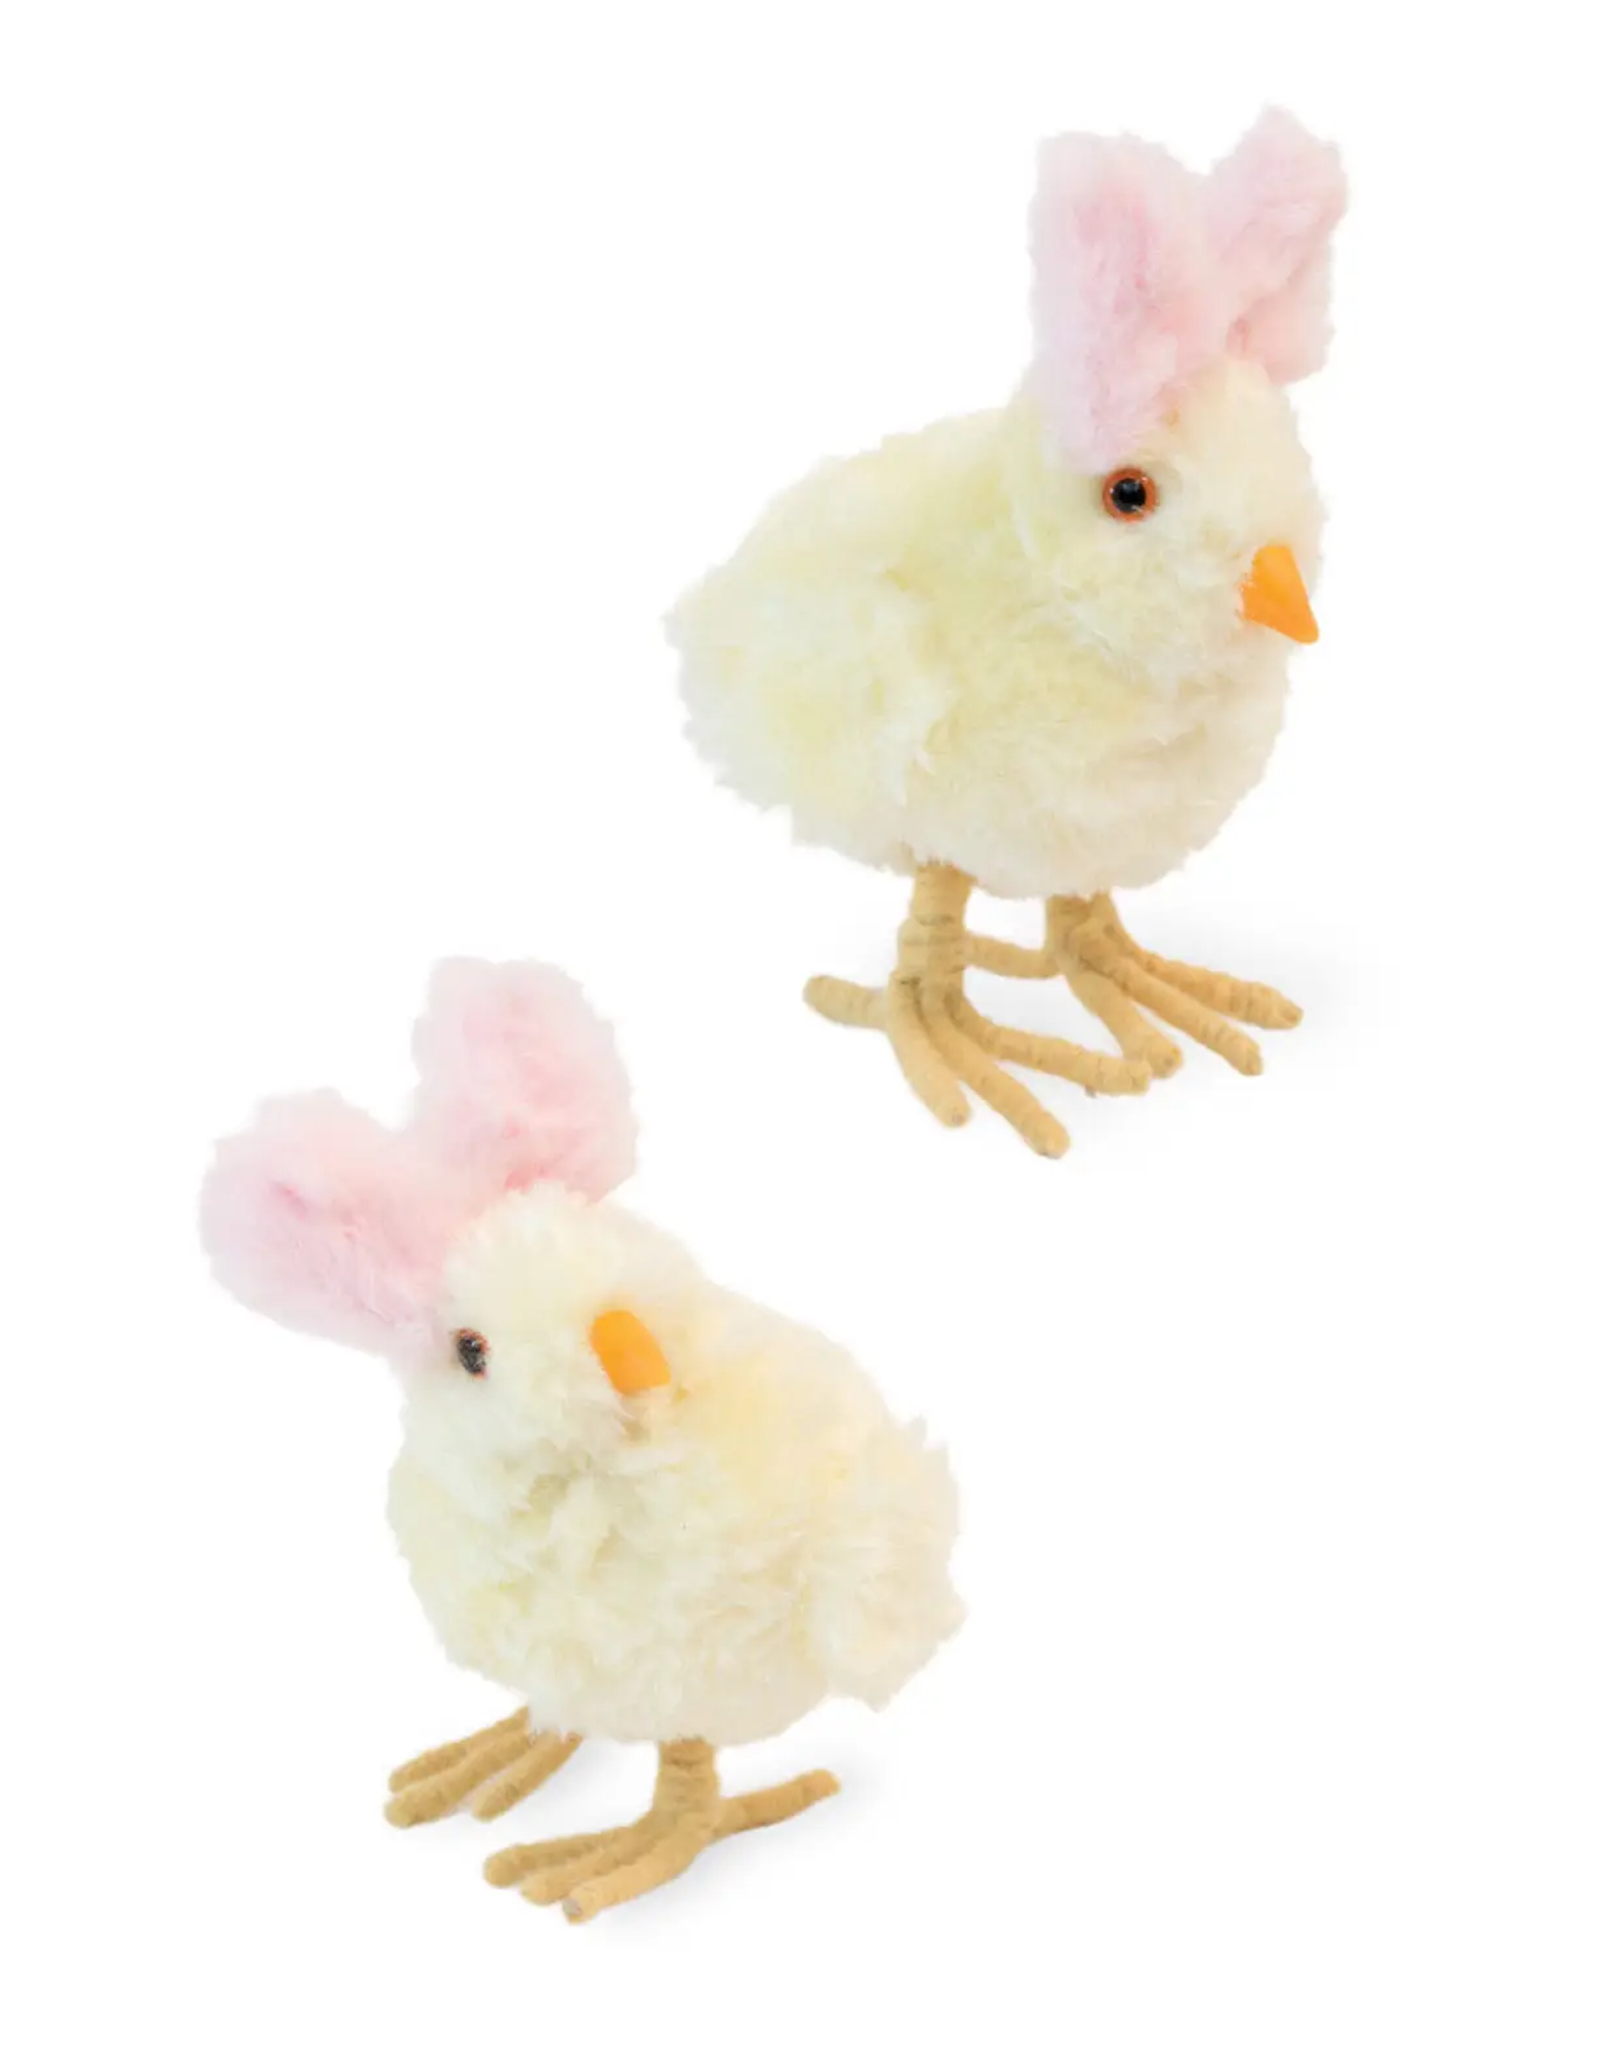 Chicks with Bunny Ears